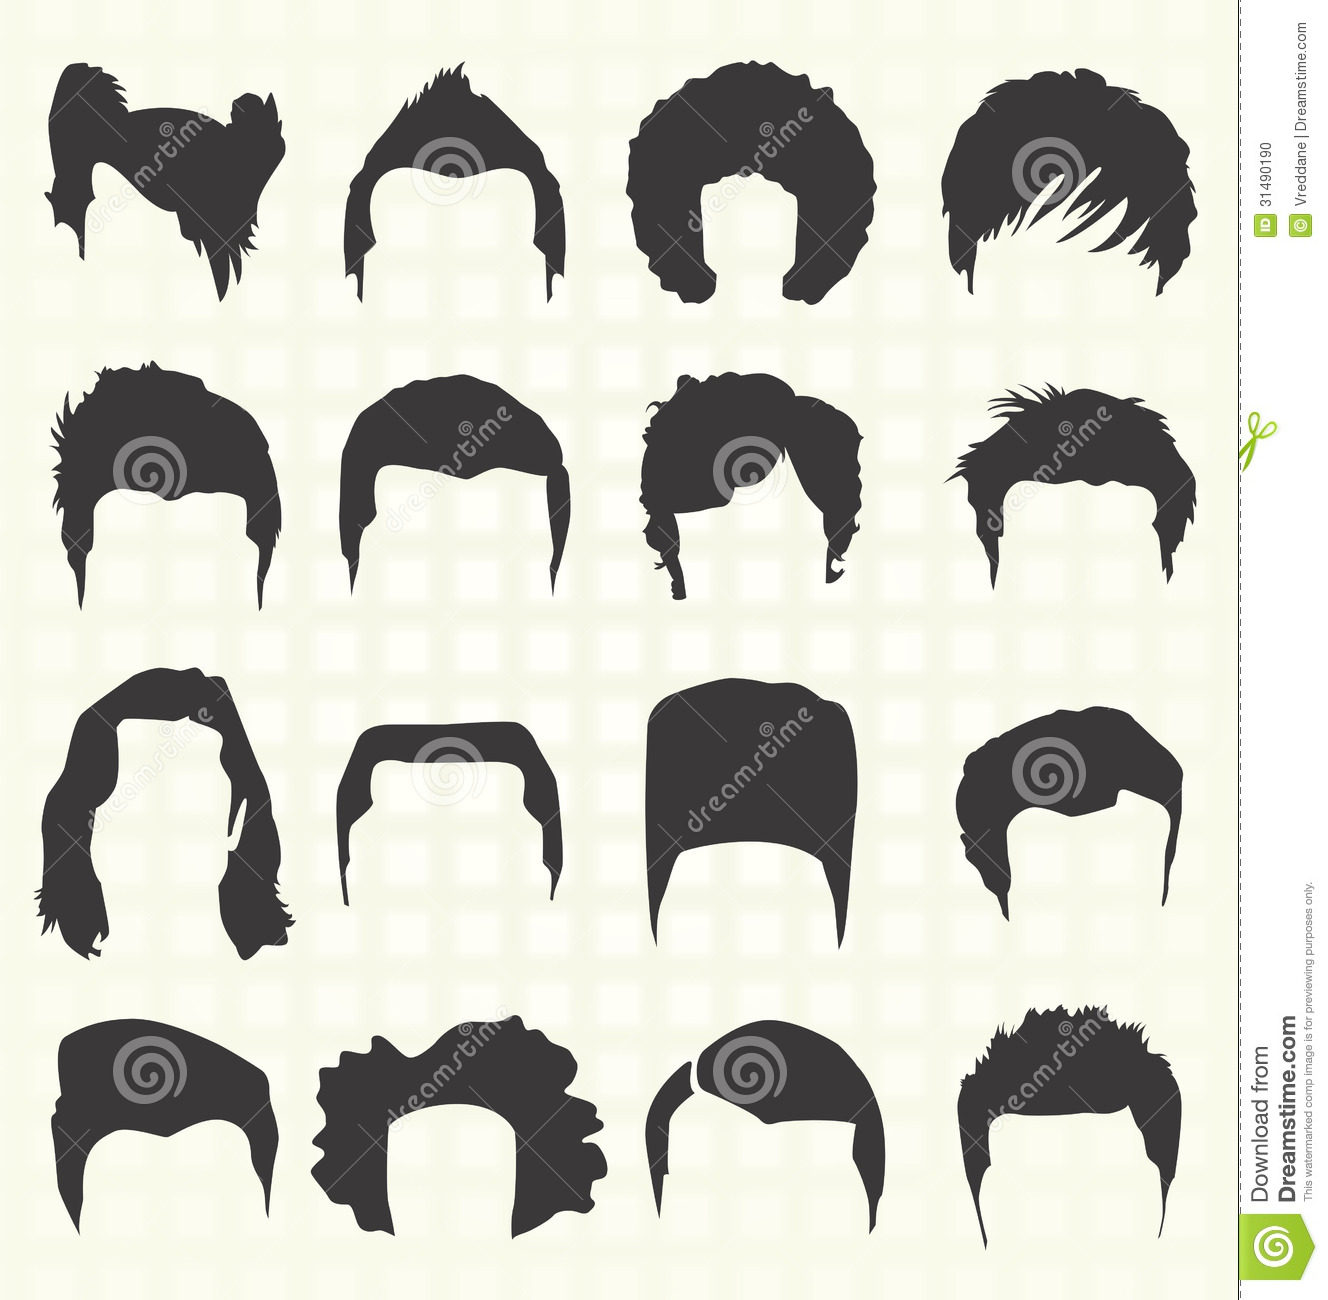 More similar stock images of ` Vector Set: Hair Style Silhouettes `